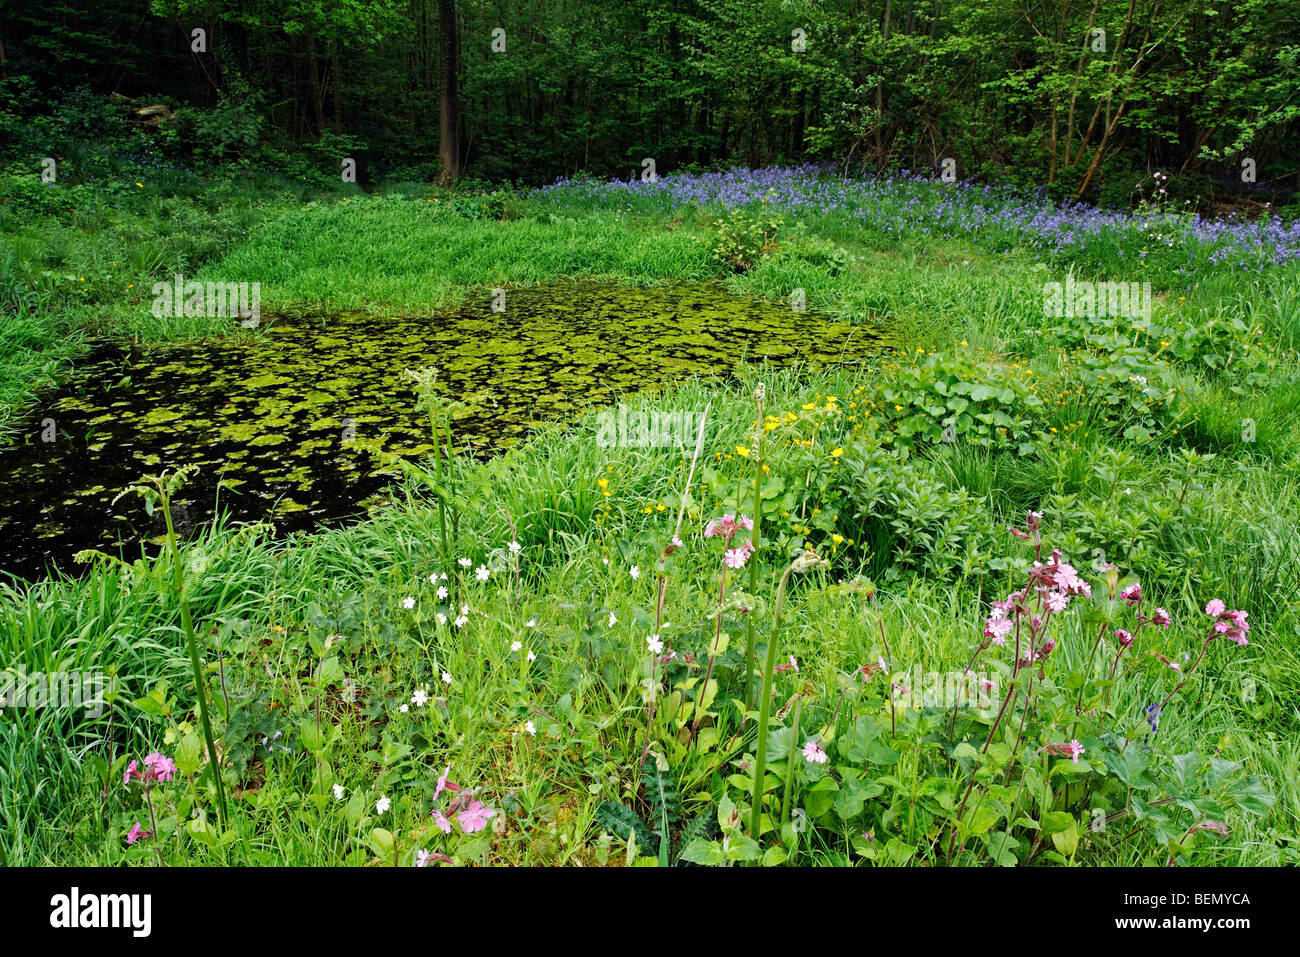 Pond surrounded by red campion (Silene dioica) and bluebells (Endymion nonscriptus) Stock Photo